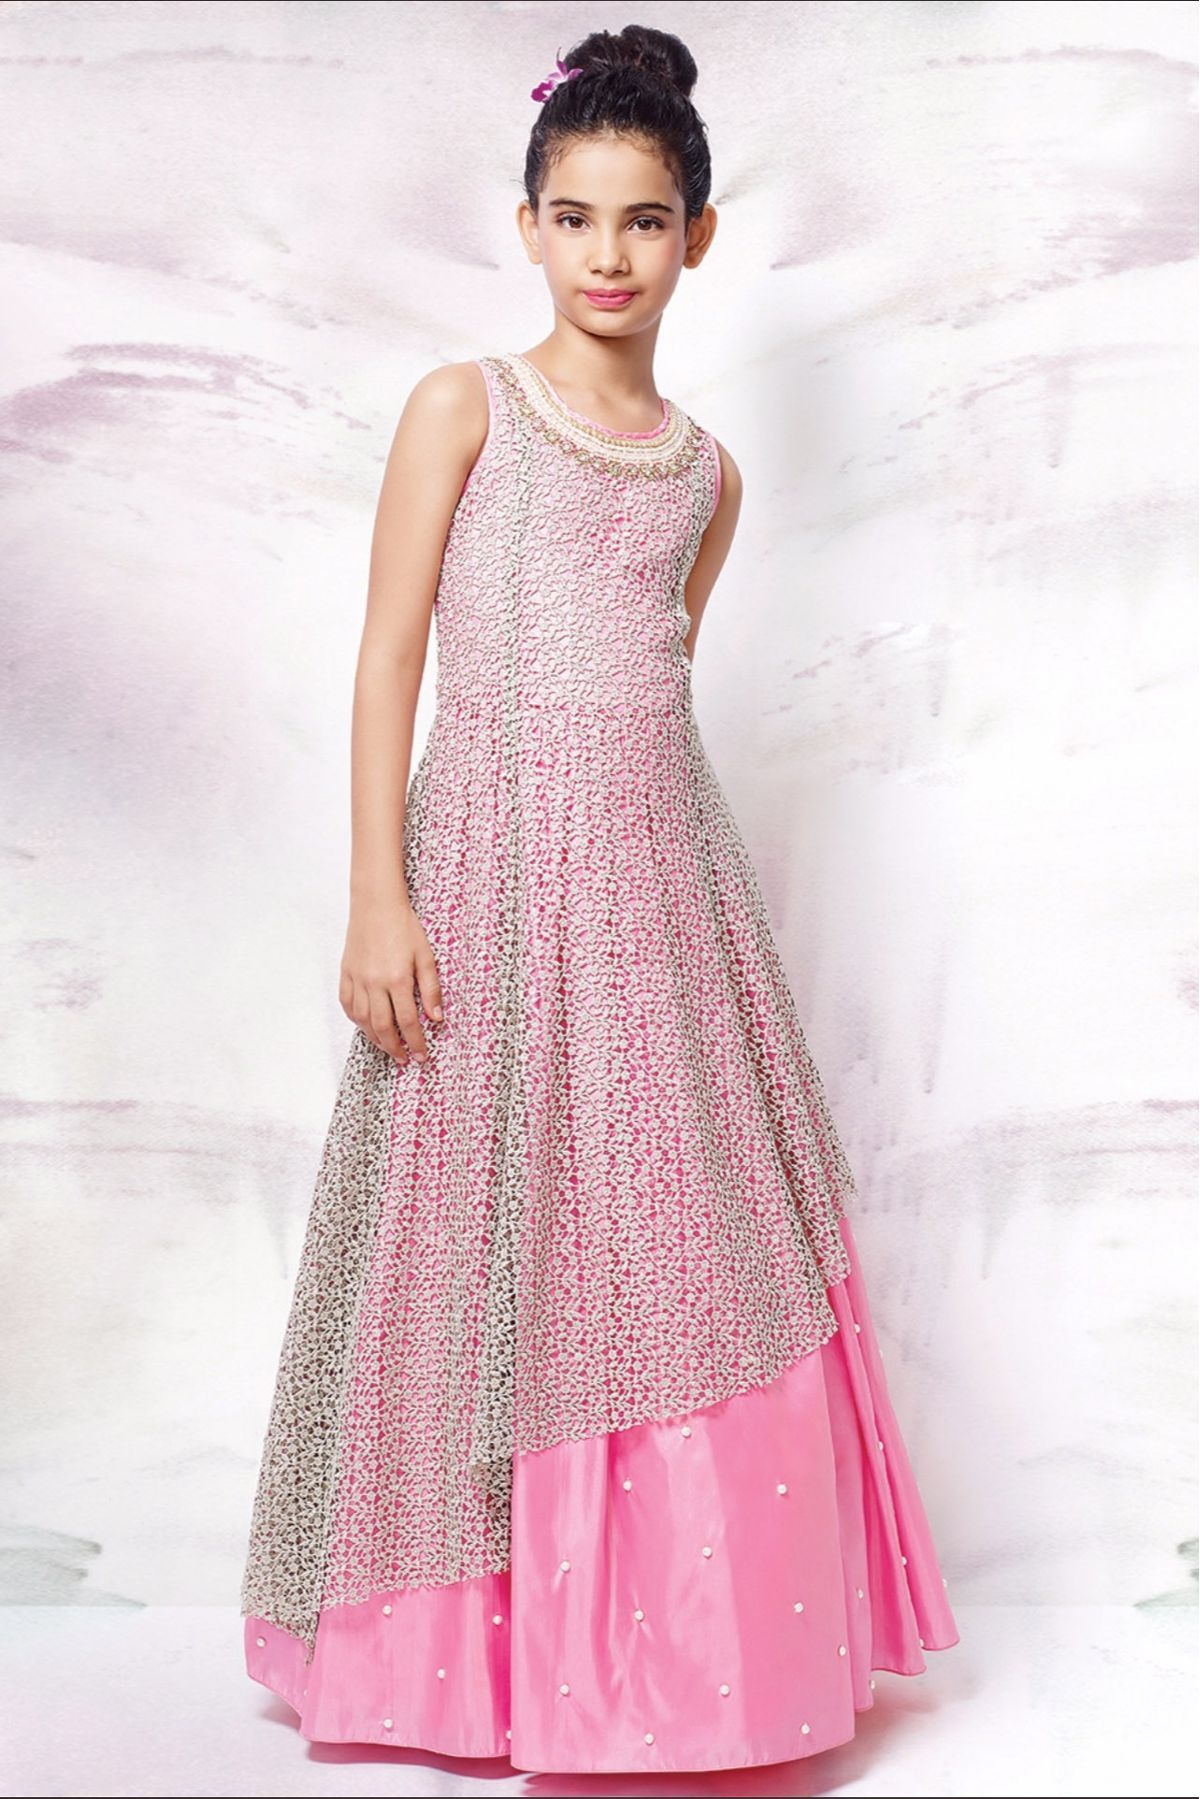 547f5796952f Dress up your little diva in a plush Net Pink colour of the Gown looks  charming and pretty. This Gown will make your dear little angel look  adorable for any ...